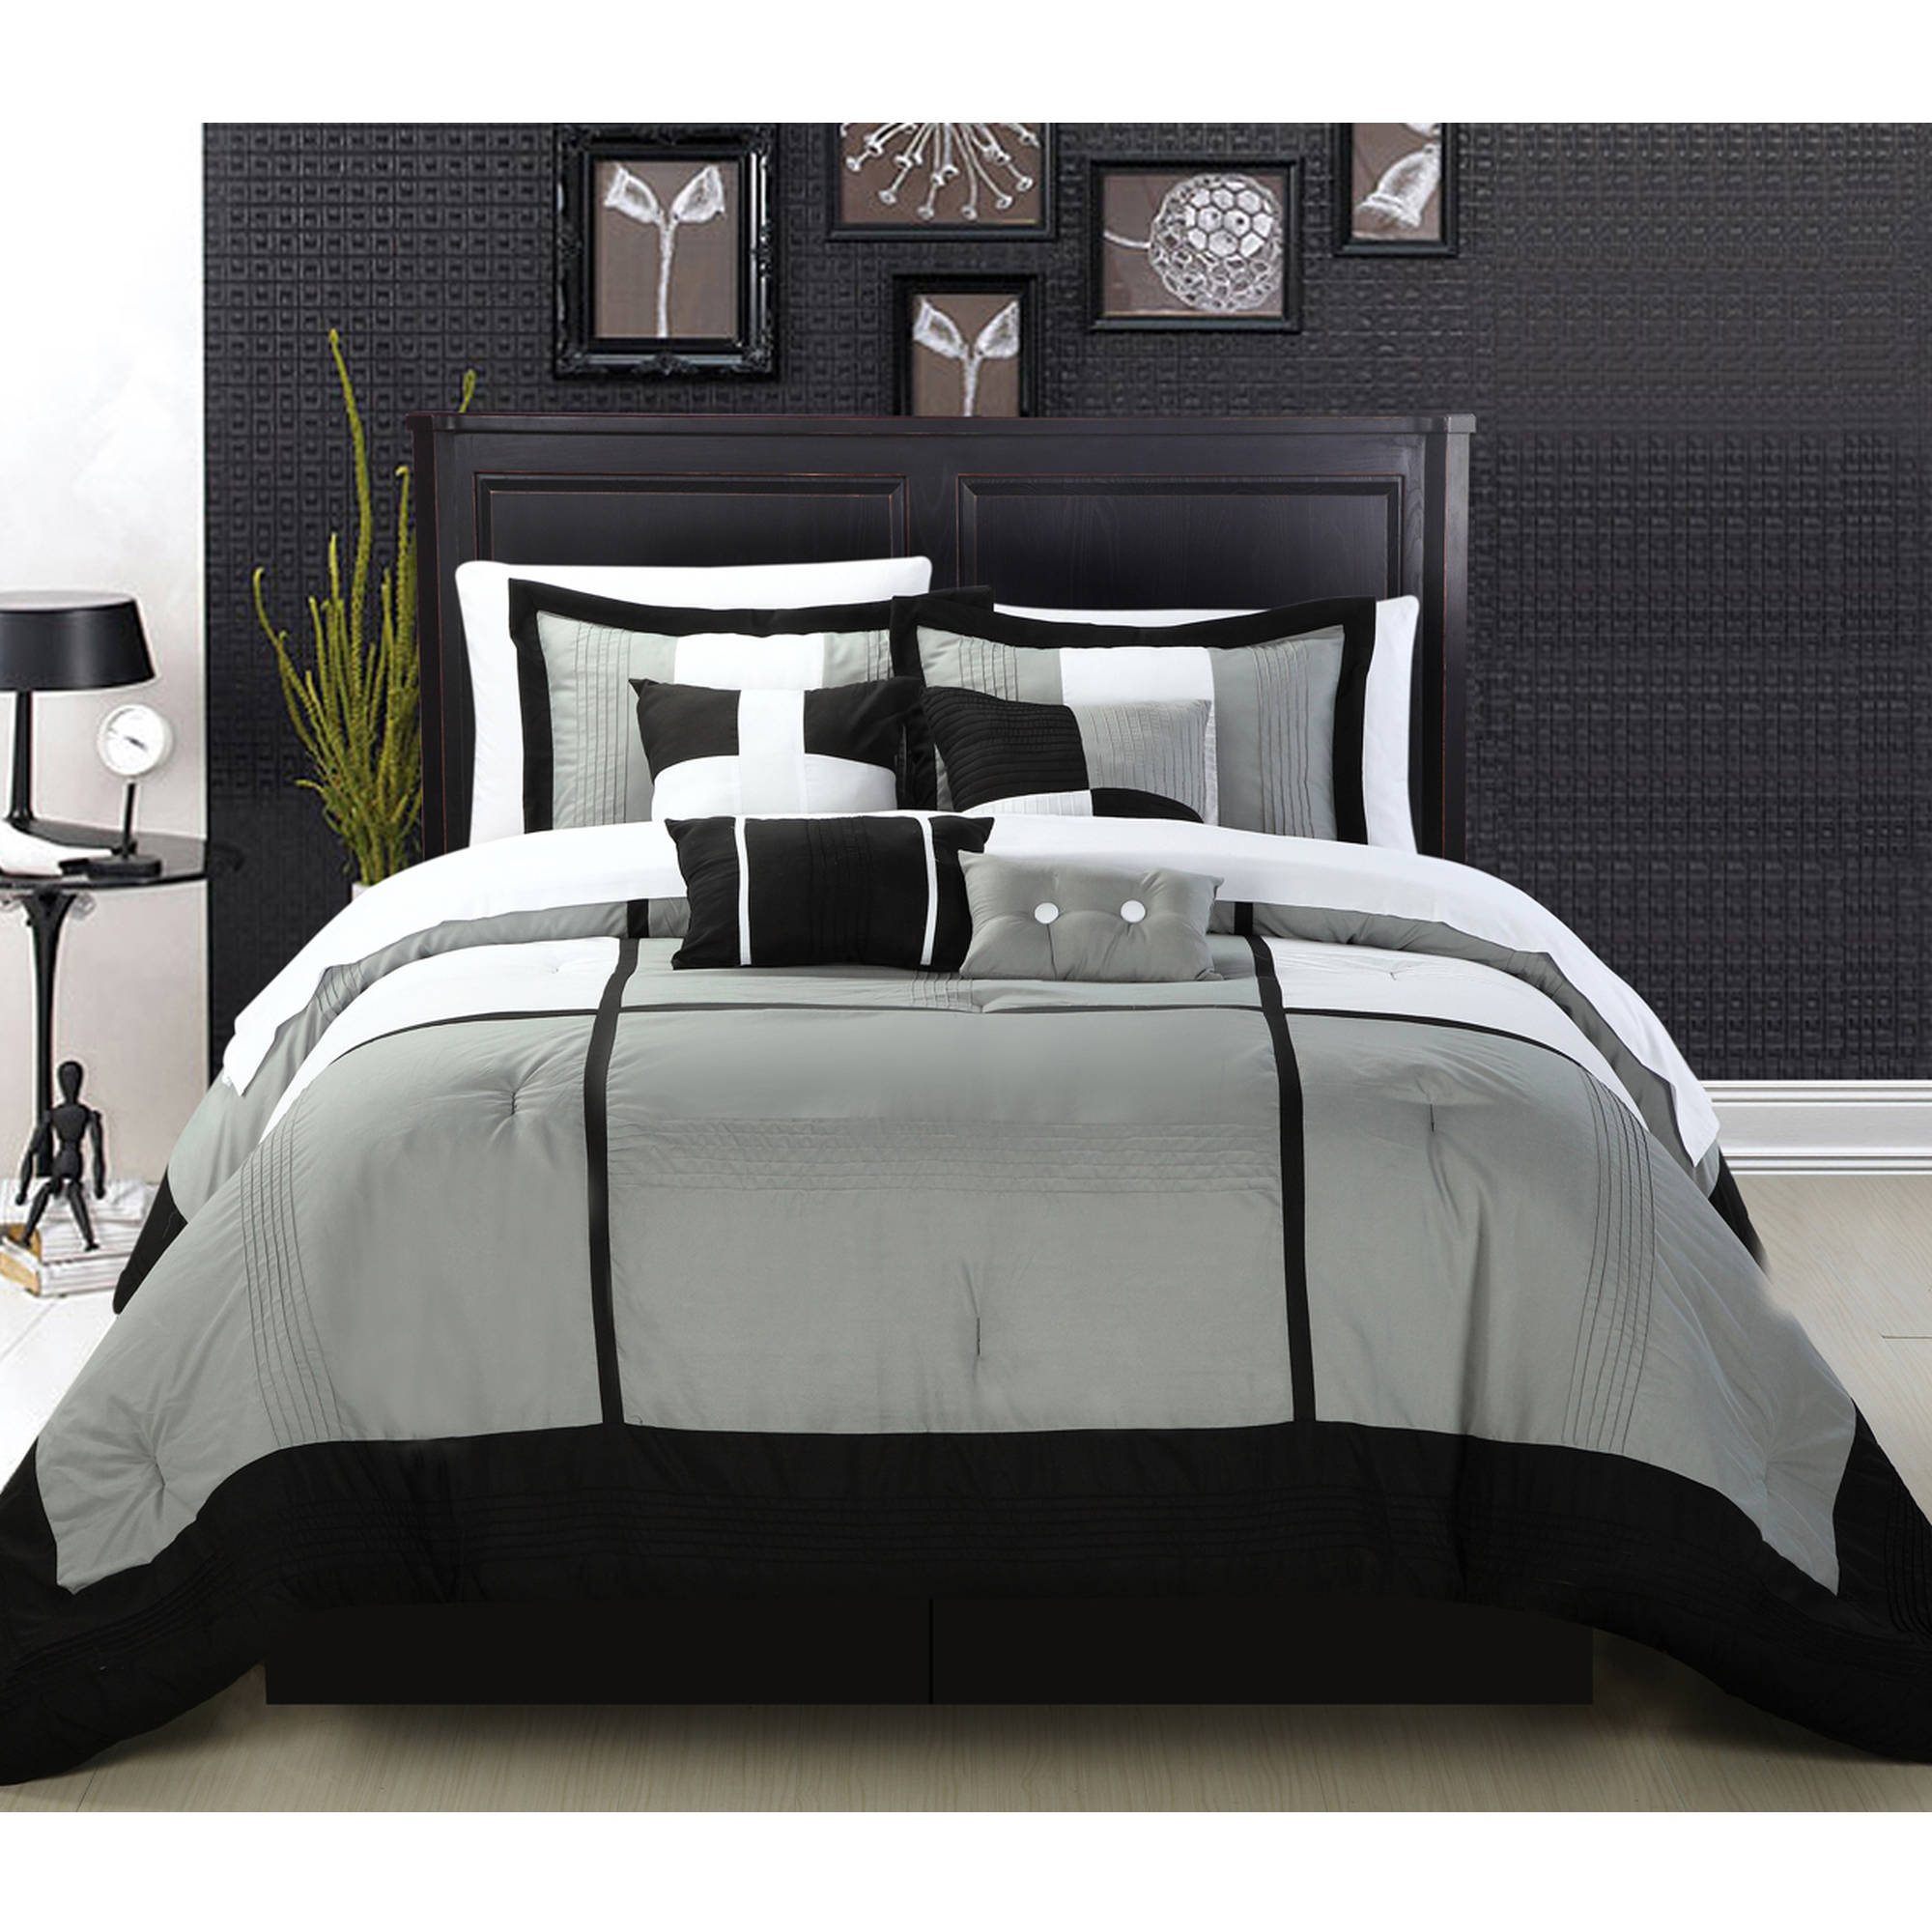 Desiree 12-Piece Bed in a Bag Bedding Comforter Set